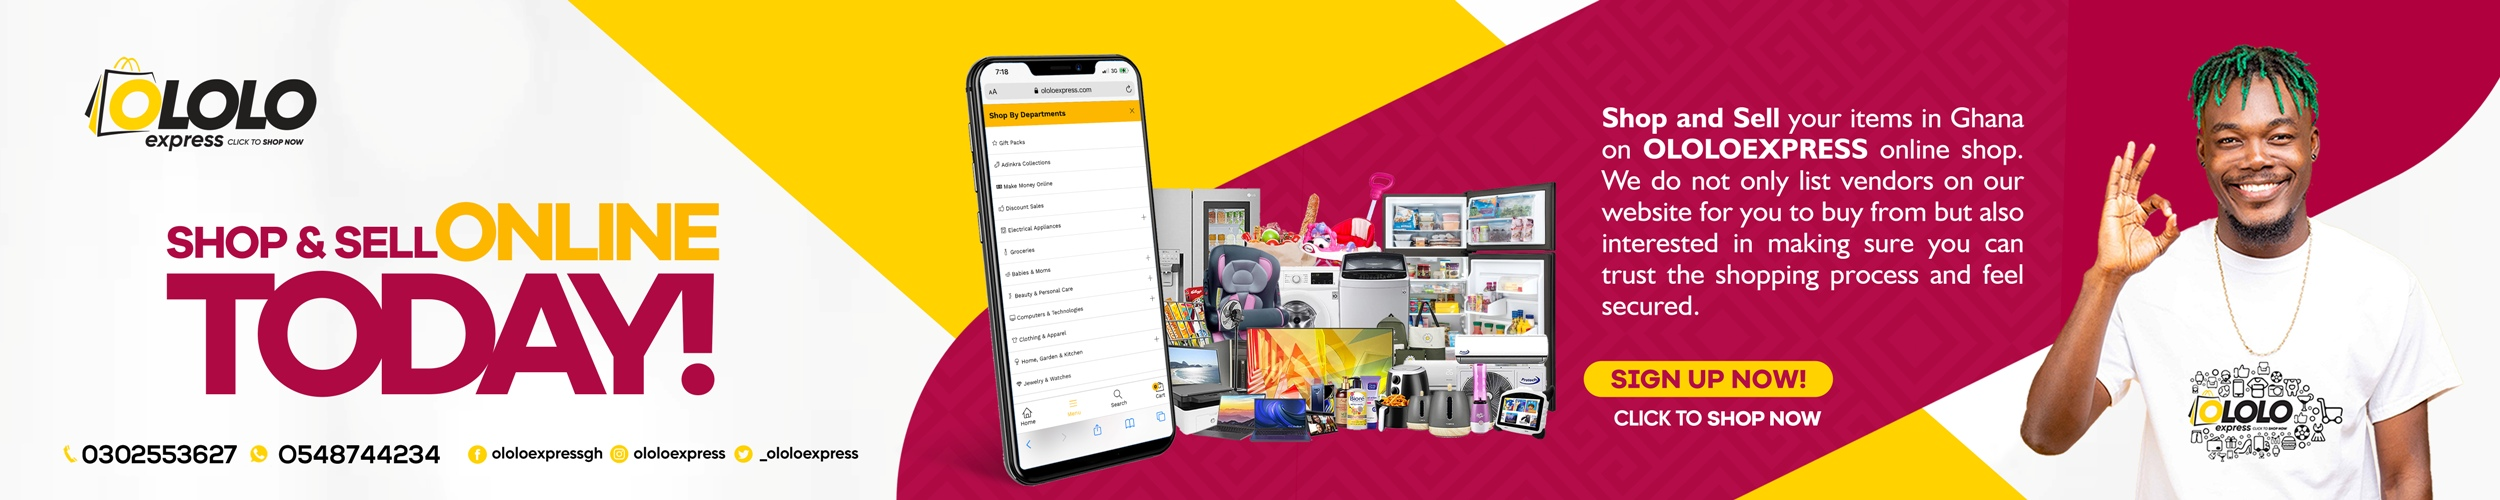 shop and sell on ololoexpress